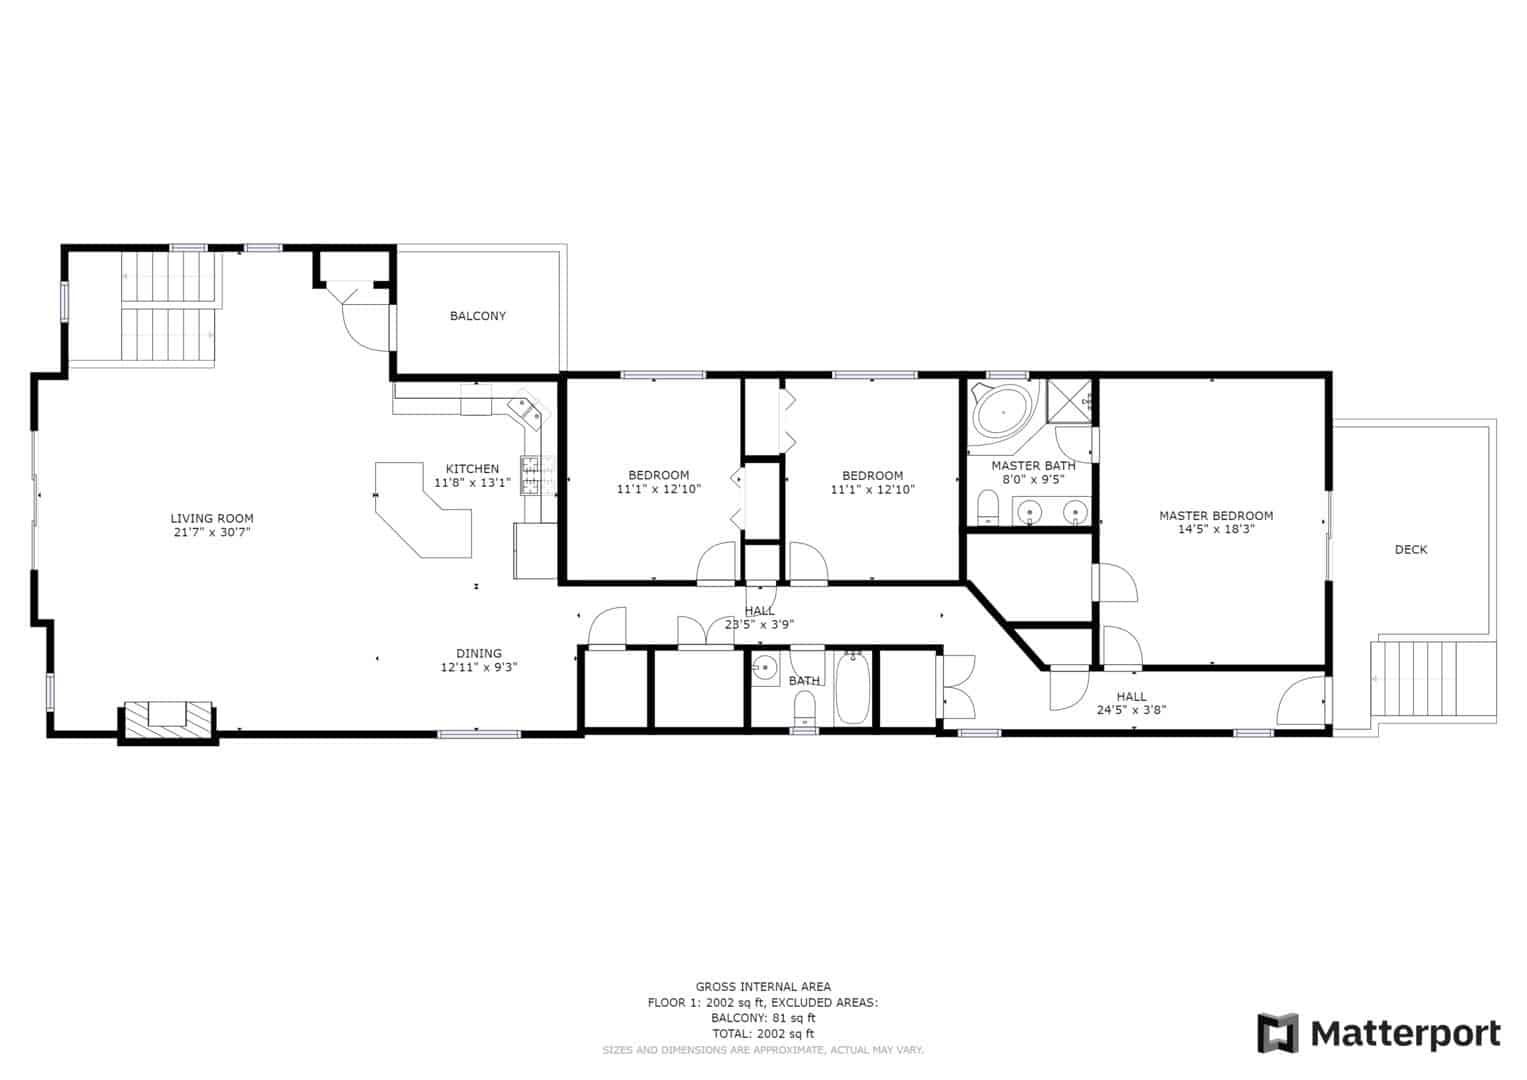 Chicago Penthouse In The Trees - Floor Plan